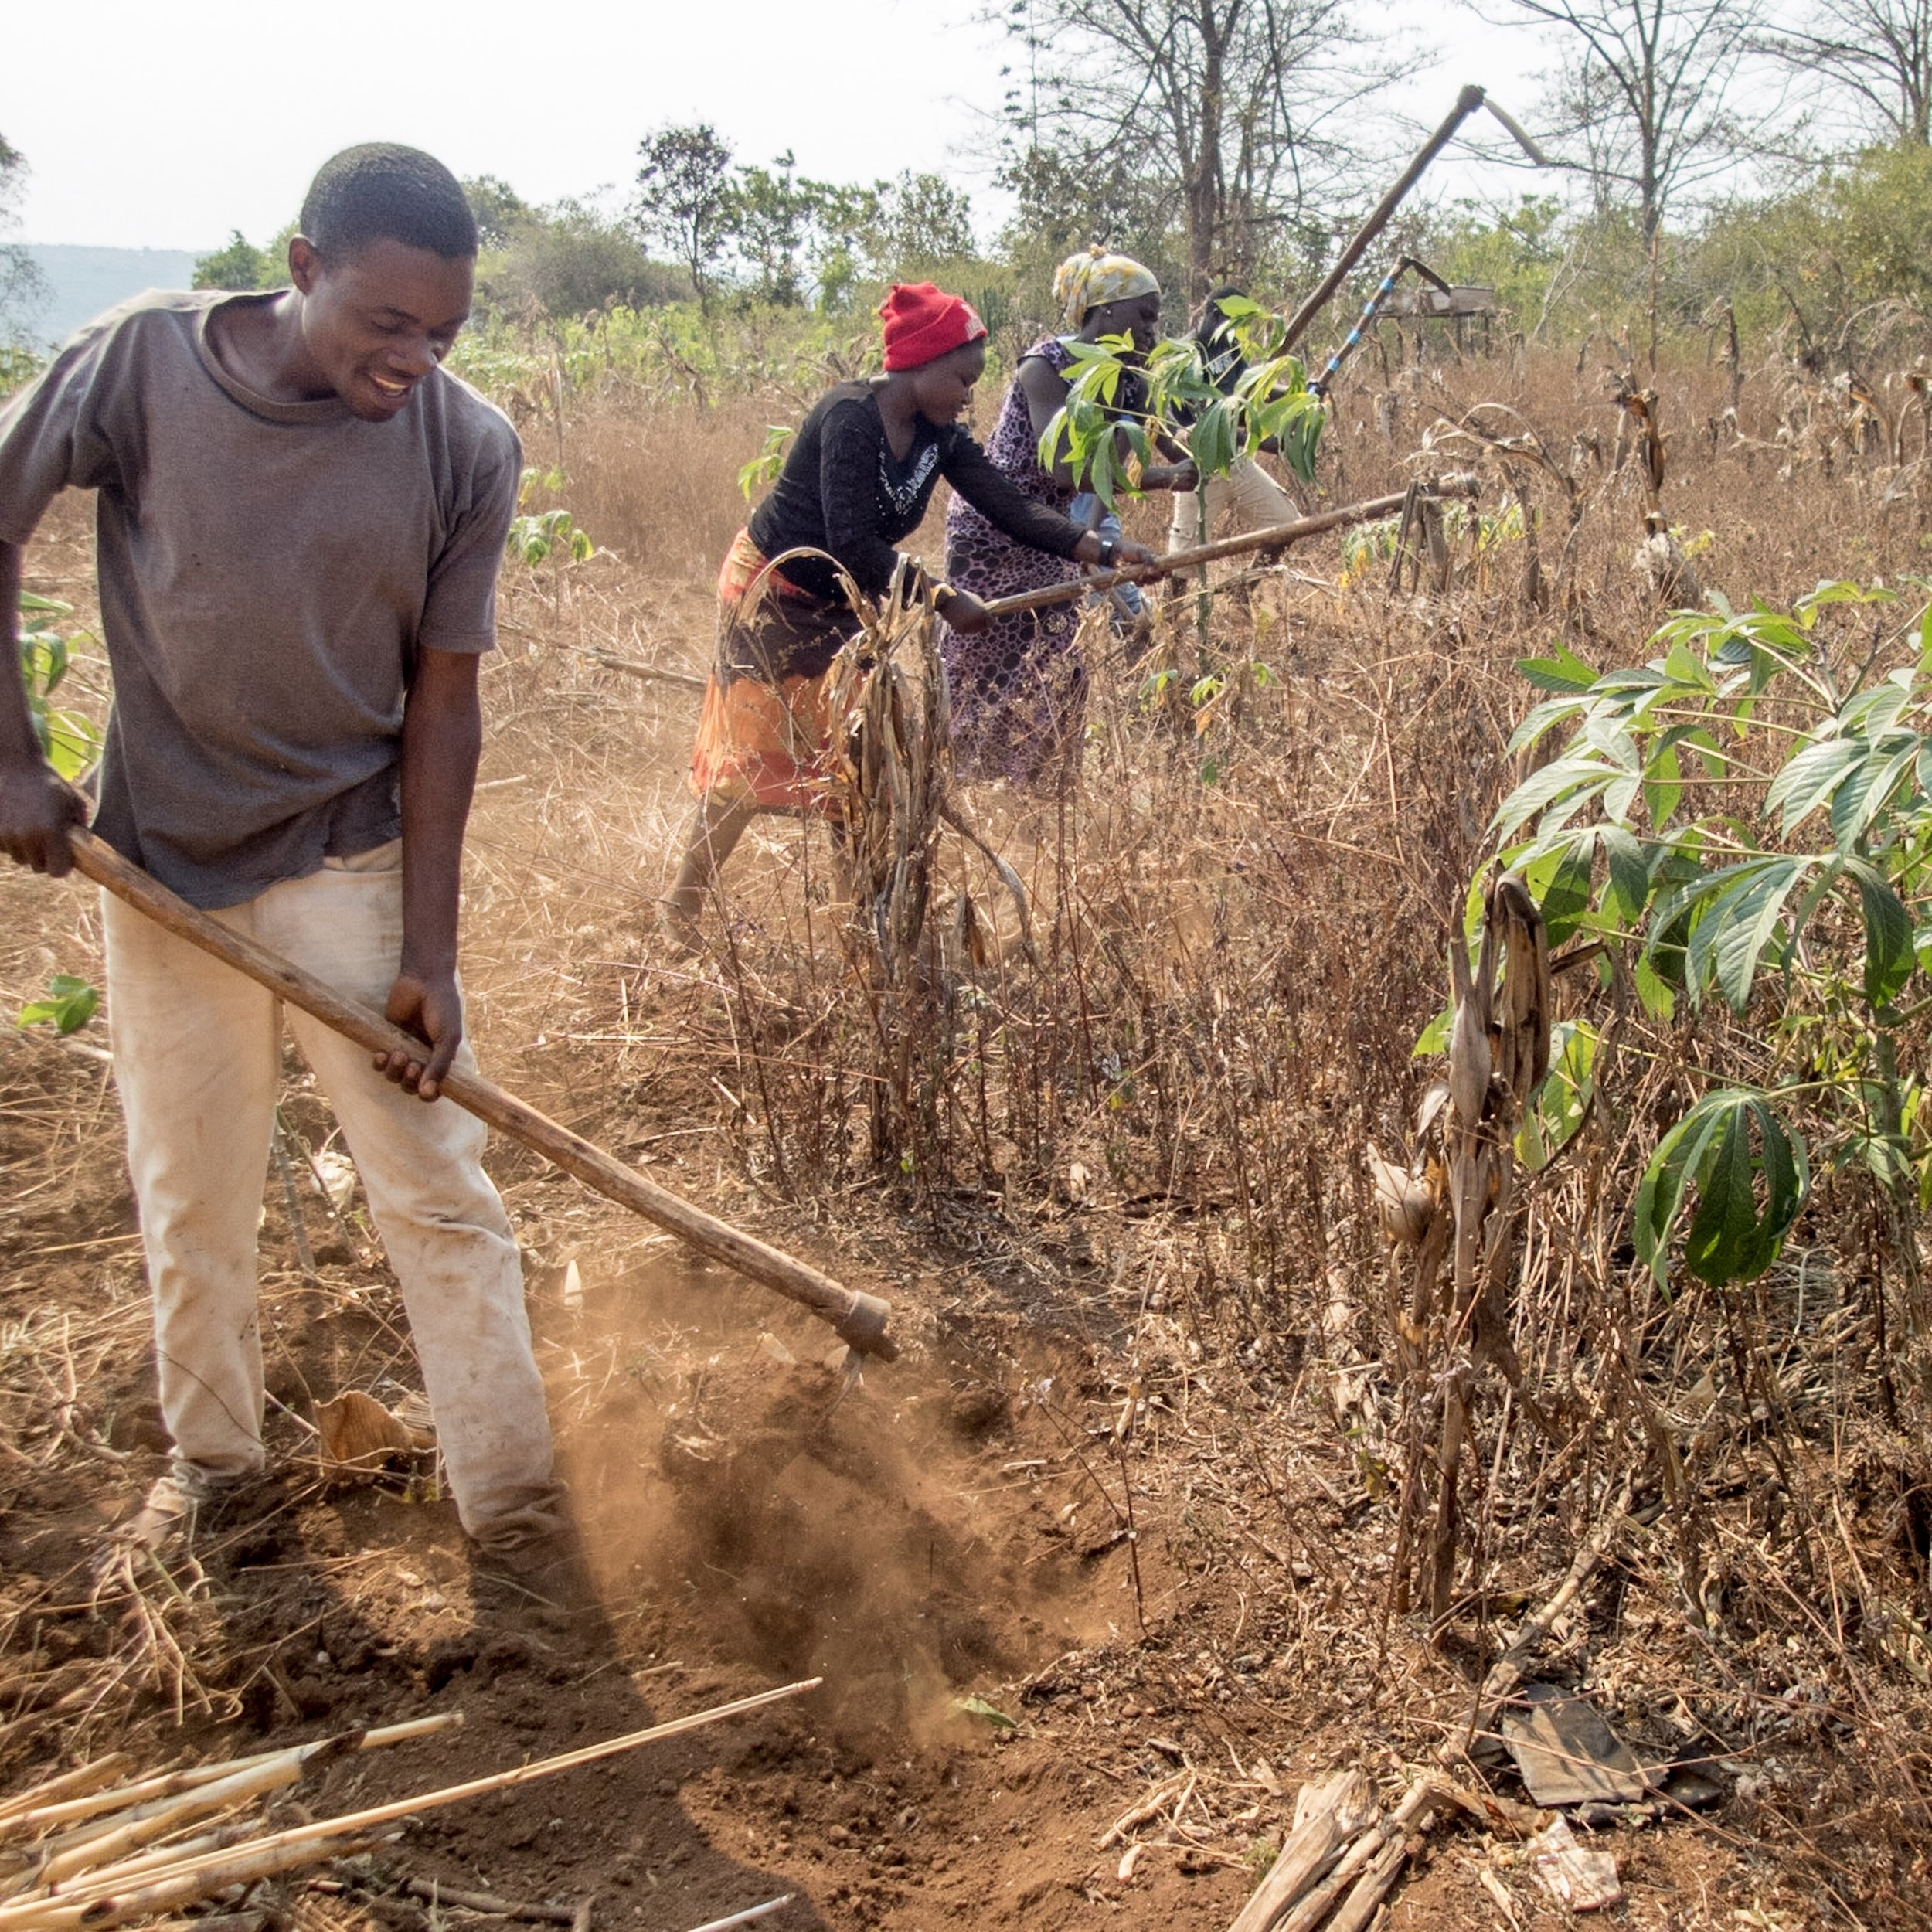 Several of our youths clearing and preparing a field. It's hard manual labor without modern farm equipment that we take for granted.